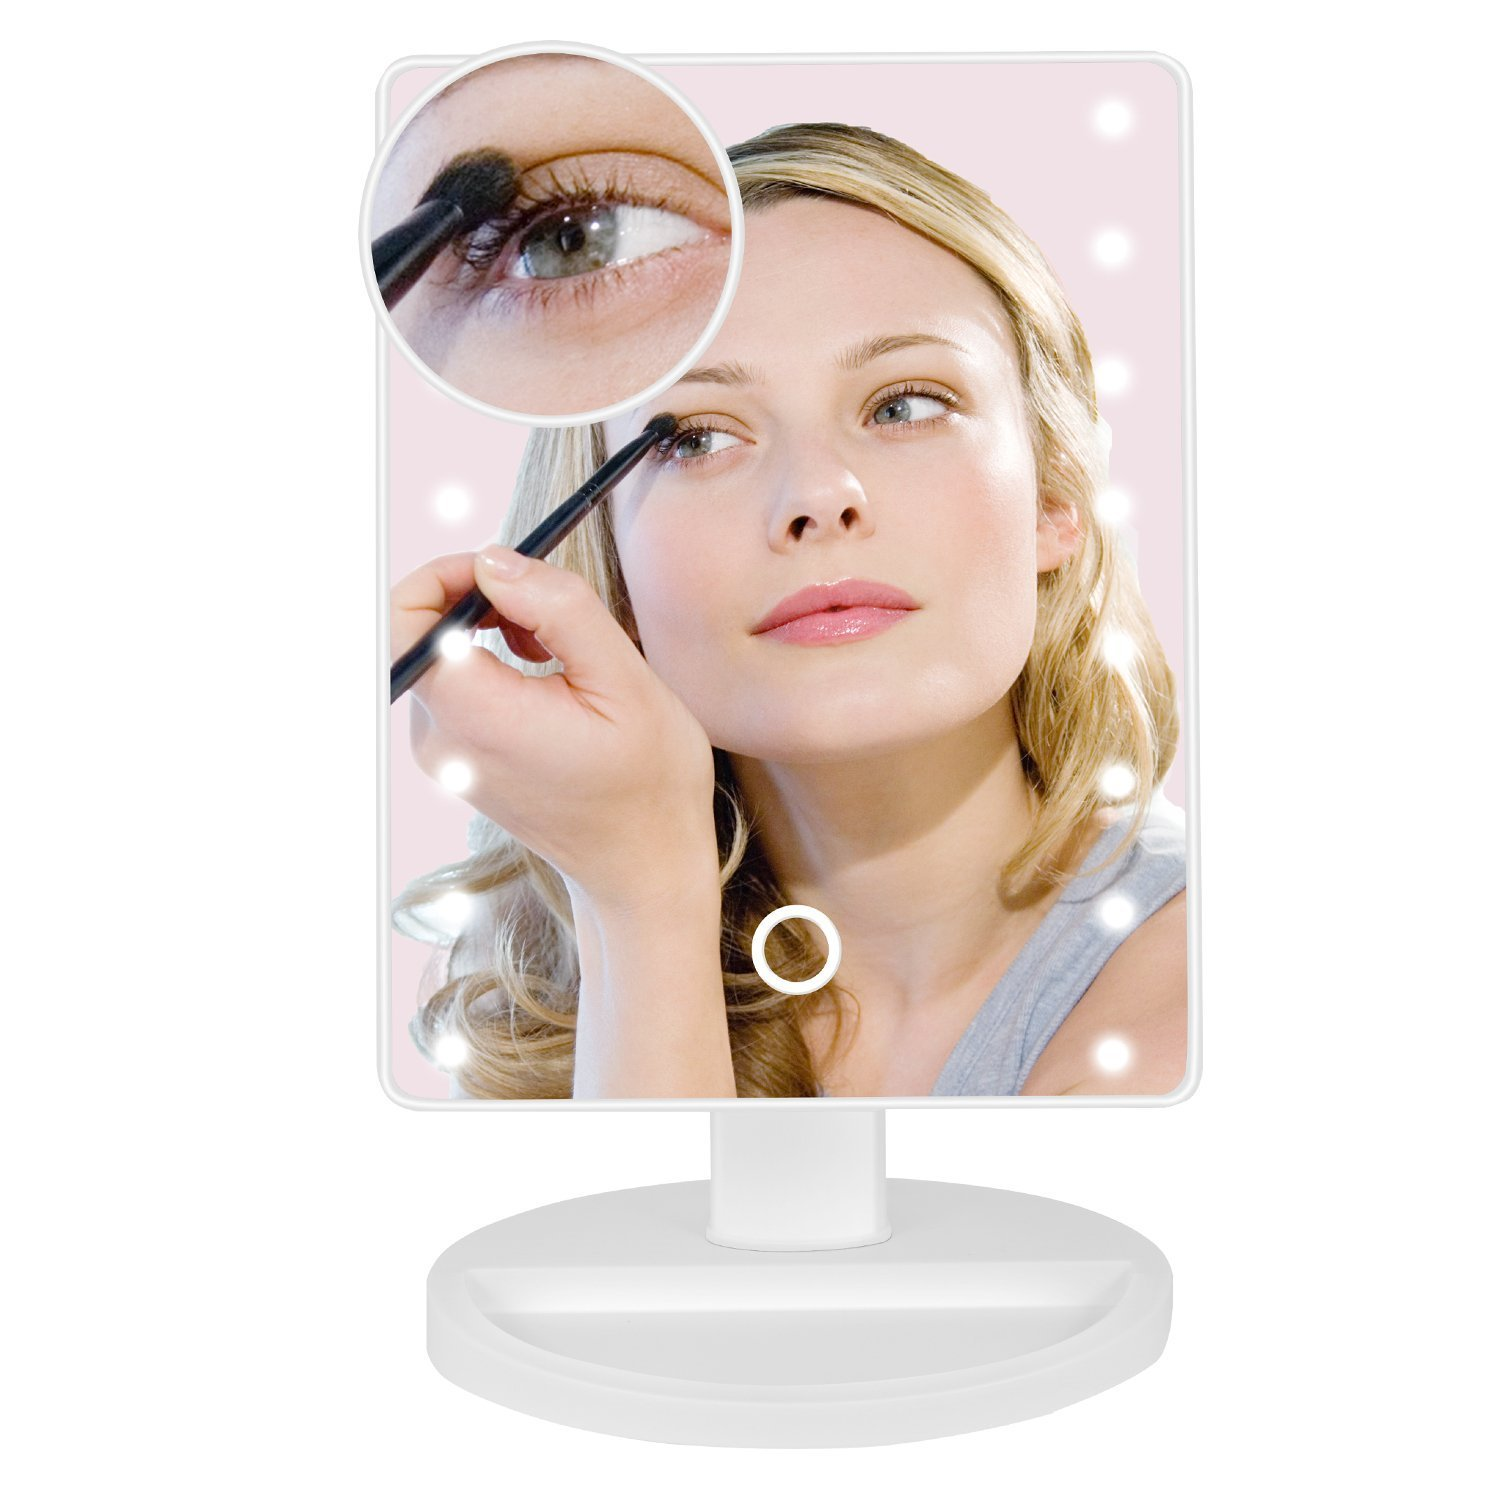 Bew 16LED Lights & Touch Screen Dimming Lighted Make up Mirror, Illuminated Magnifying Mirror for Women